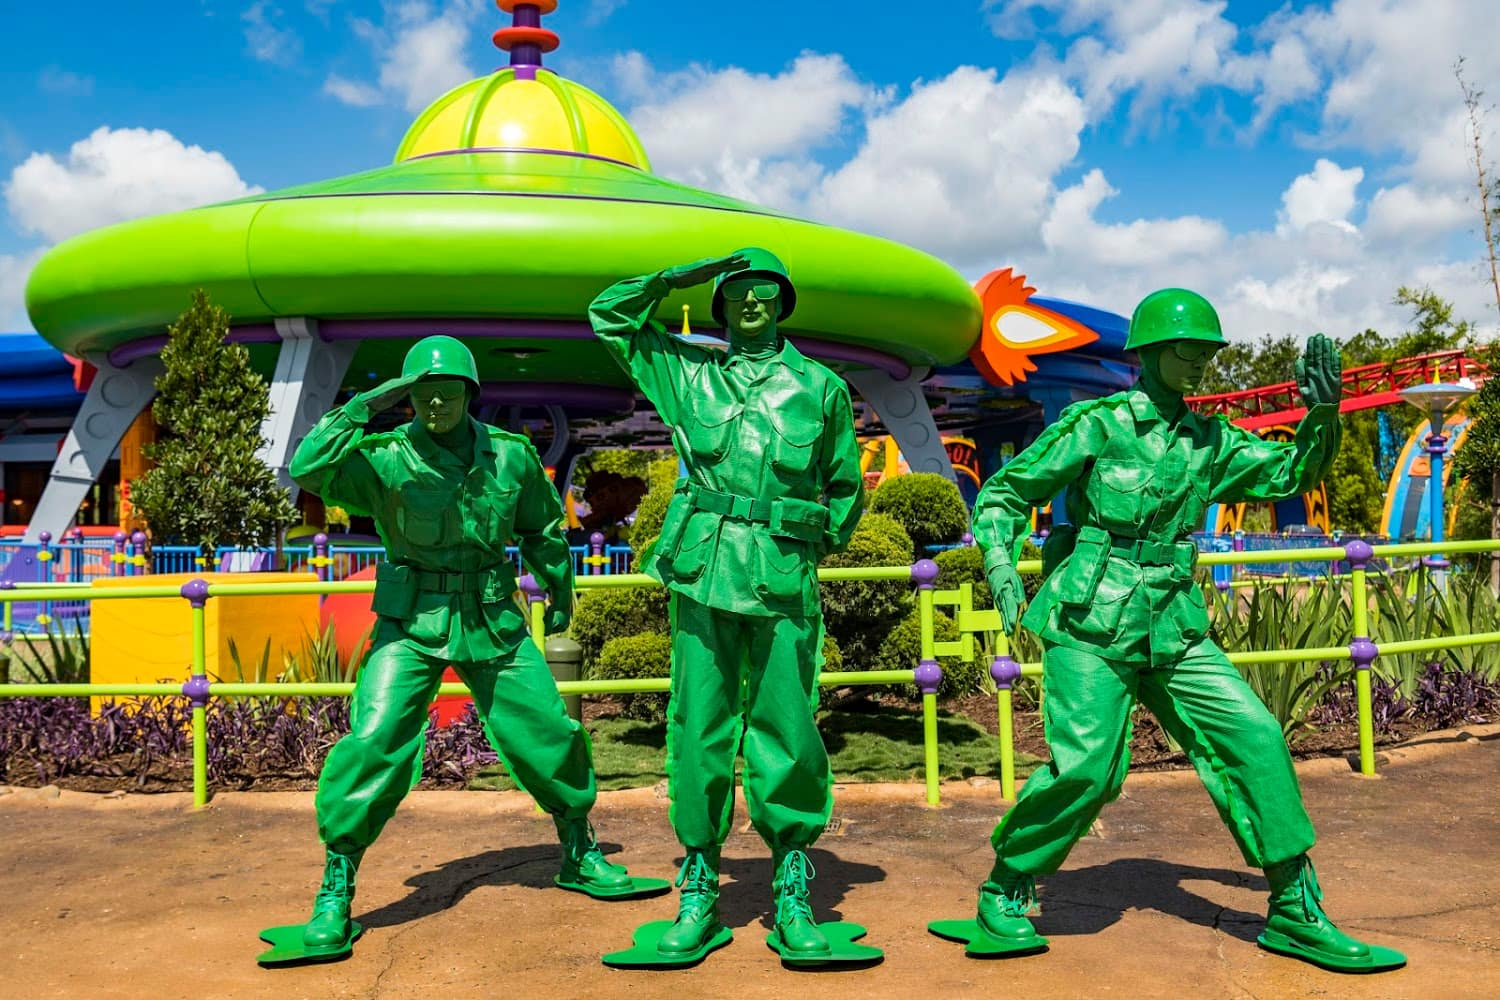 Green Army Men at Disney's Hollywood Studios for Kids